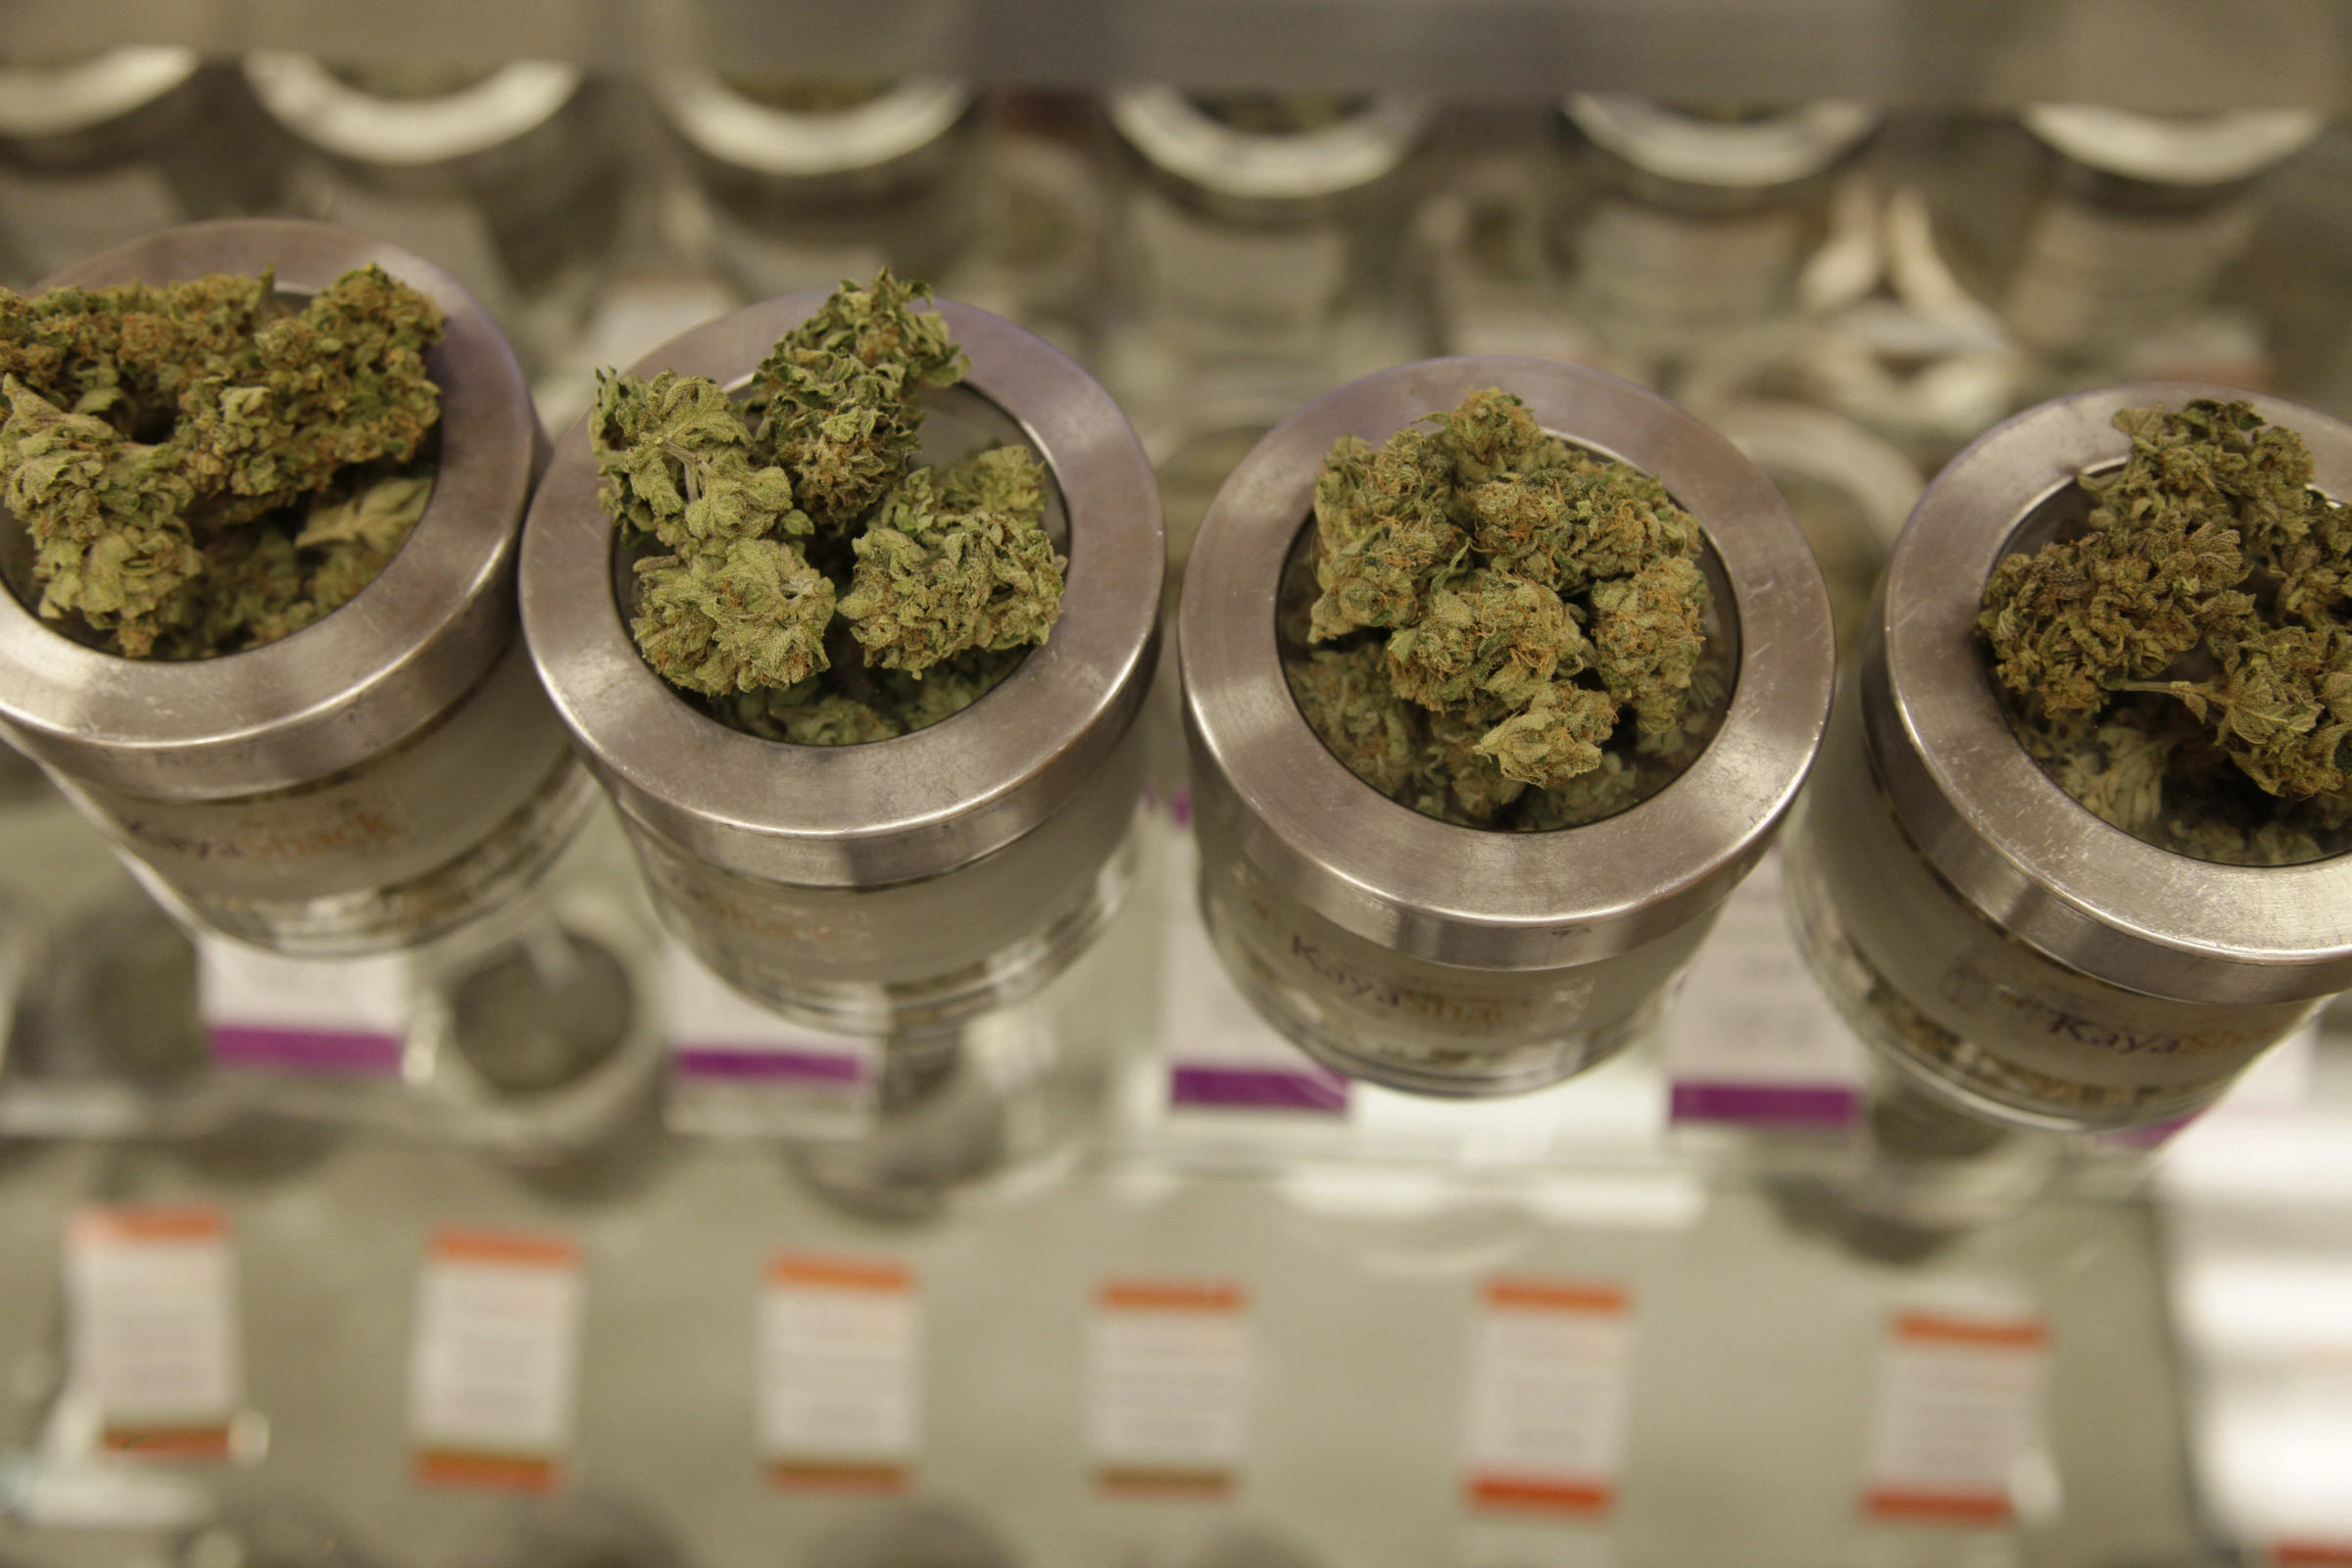 Consider these factors when looking for a marijuana dispensary to visit